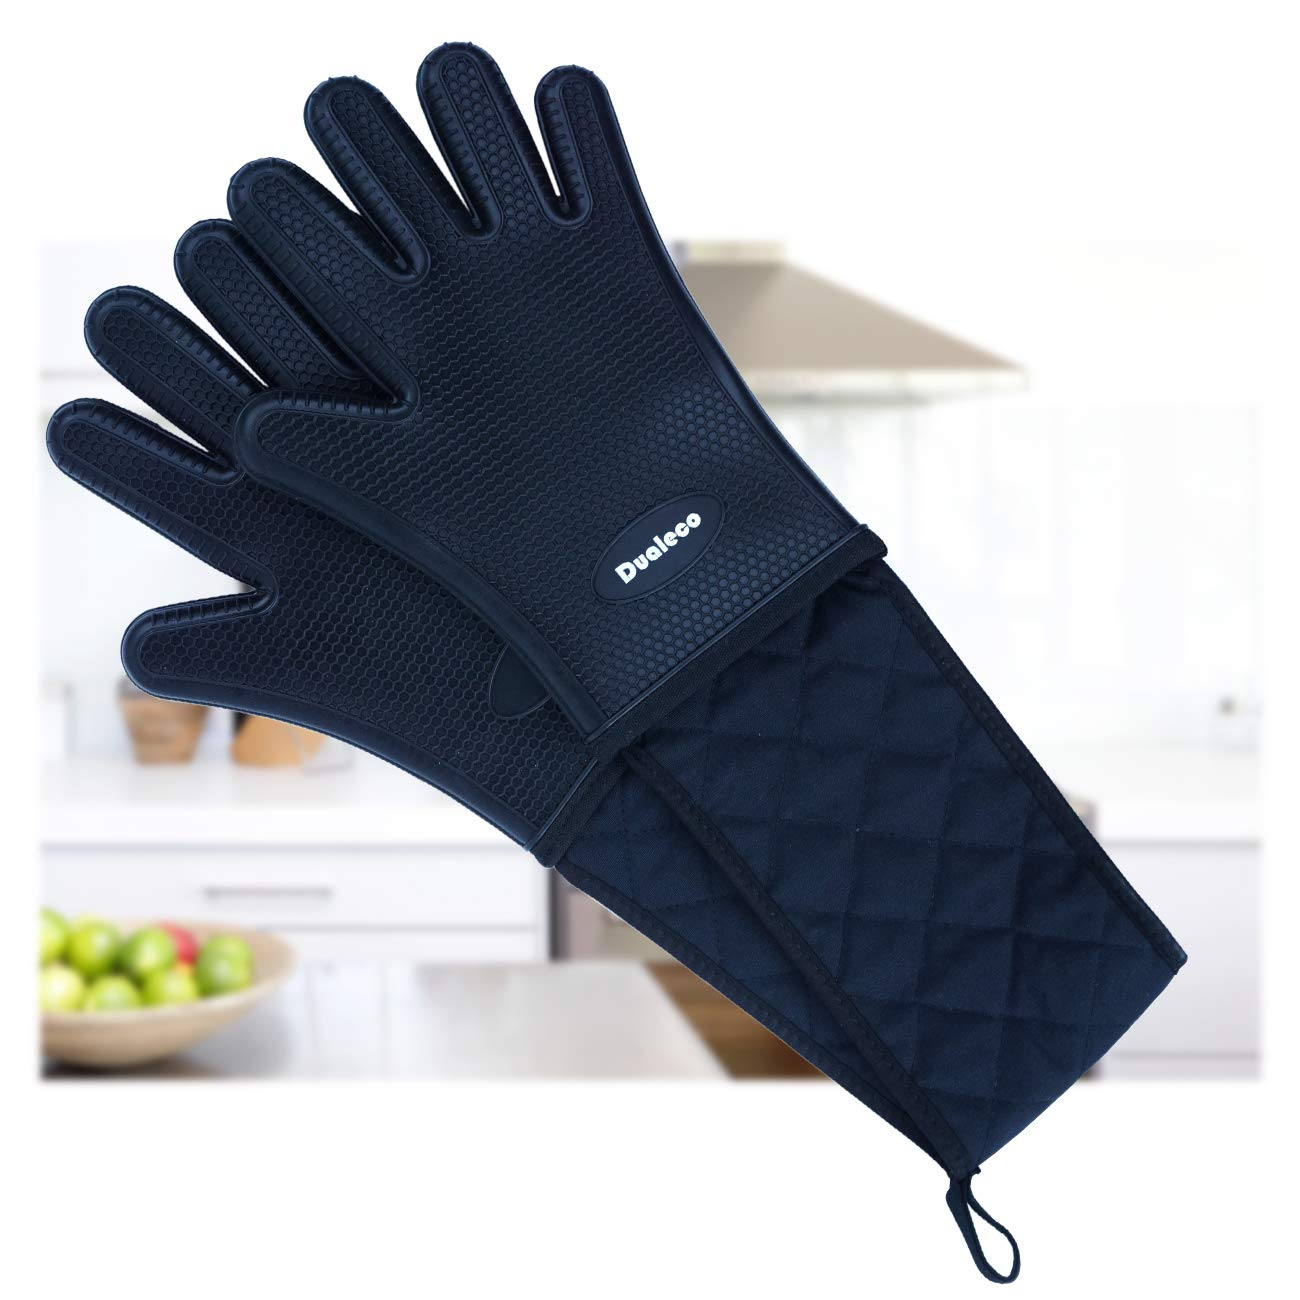 Dualeco Silicone Oven Glove Double, Heat Resistant Oven Glove with Fingers, Long Oven Glove Black for BBQ, Kitchen, Cooking D.E. E-Commerce Ltd.